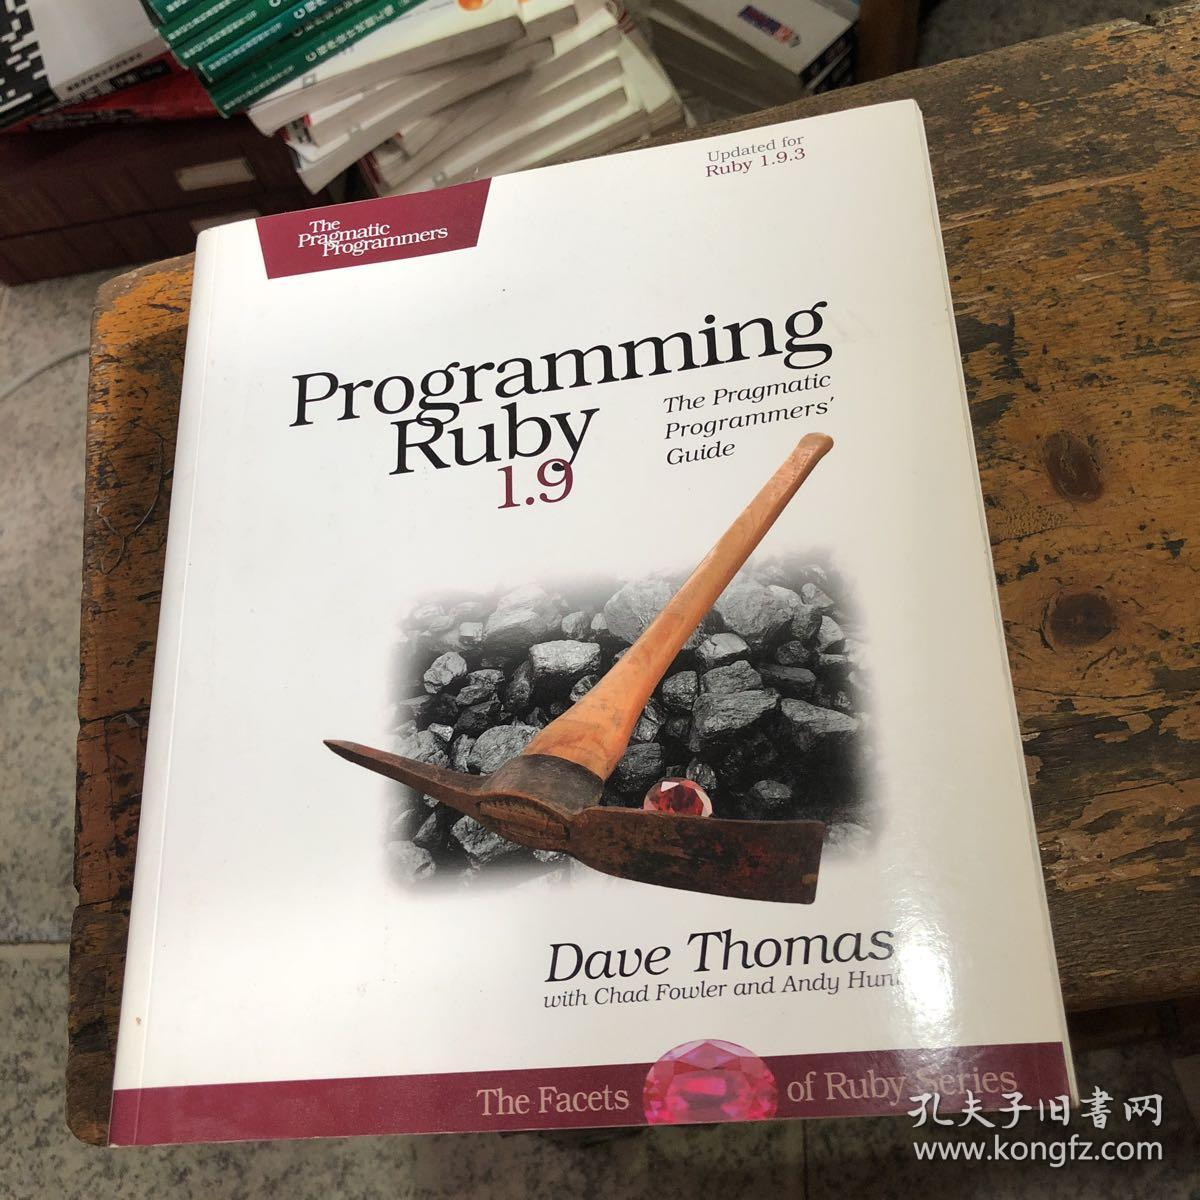 Programming Ruby 1.9:The Pragmatic Programmers' Guide